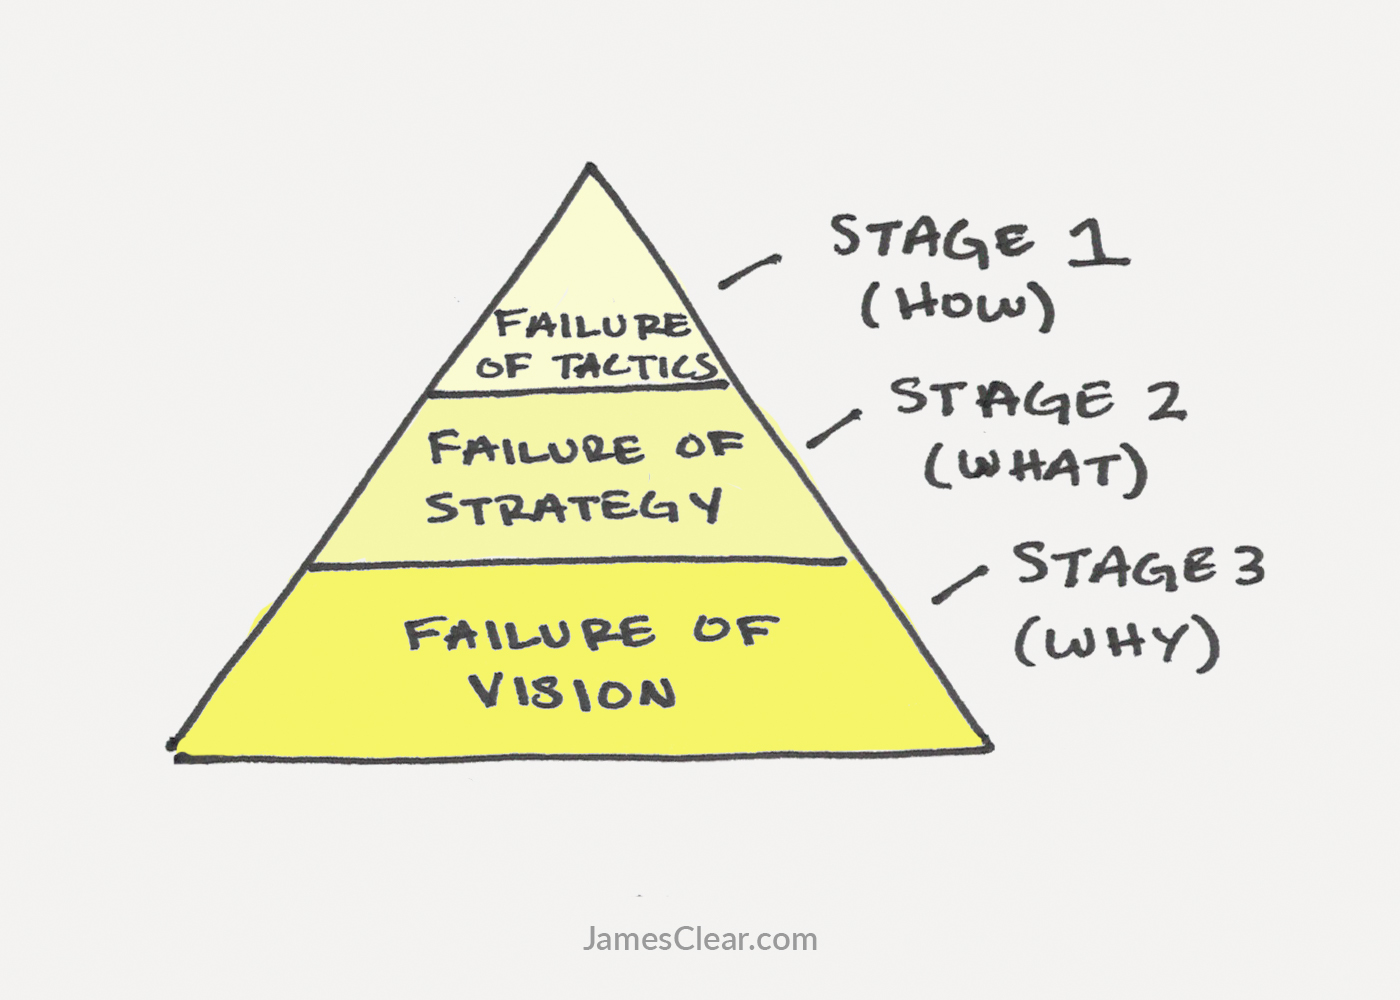 3 Stages of Failure explained